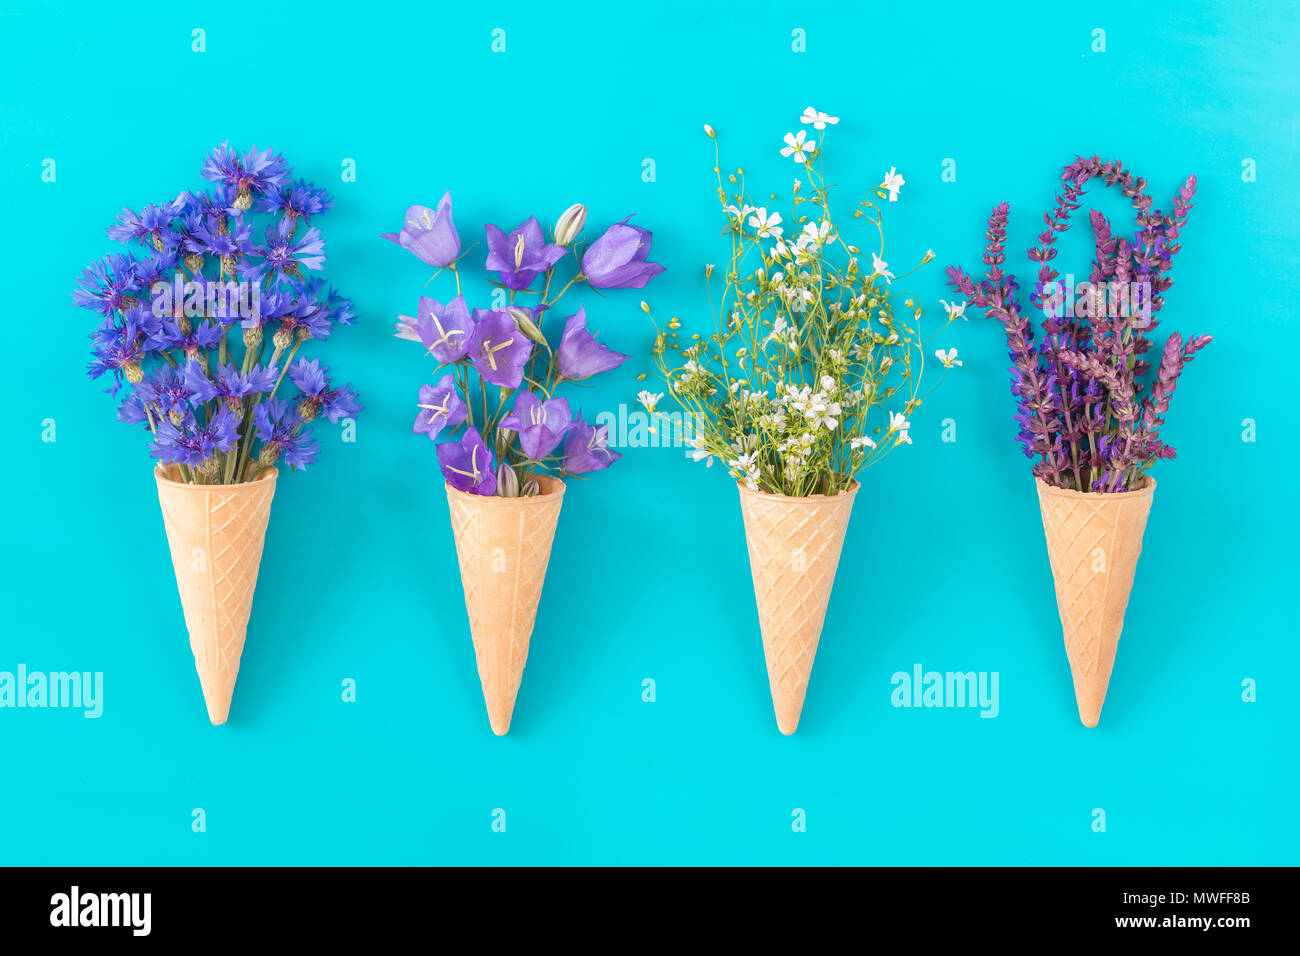 Four waffle cones with thyme, cornflower, blue bells and white flowers blossom bouquets on blue surface. Flat lay, top view floral background. - Stock Image